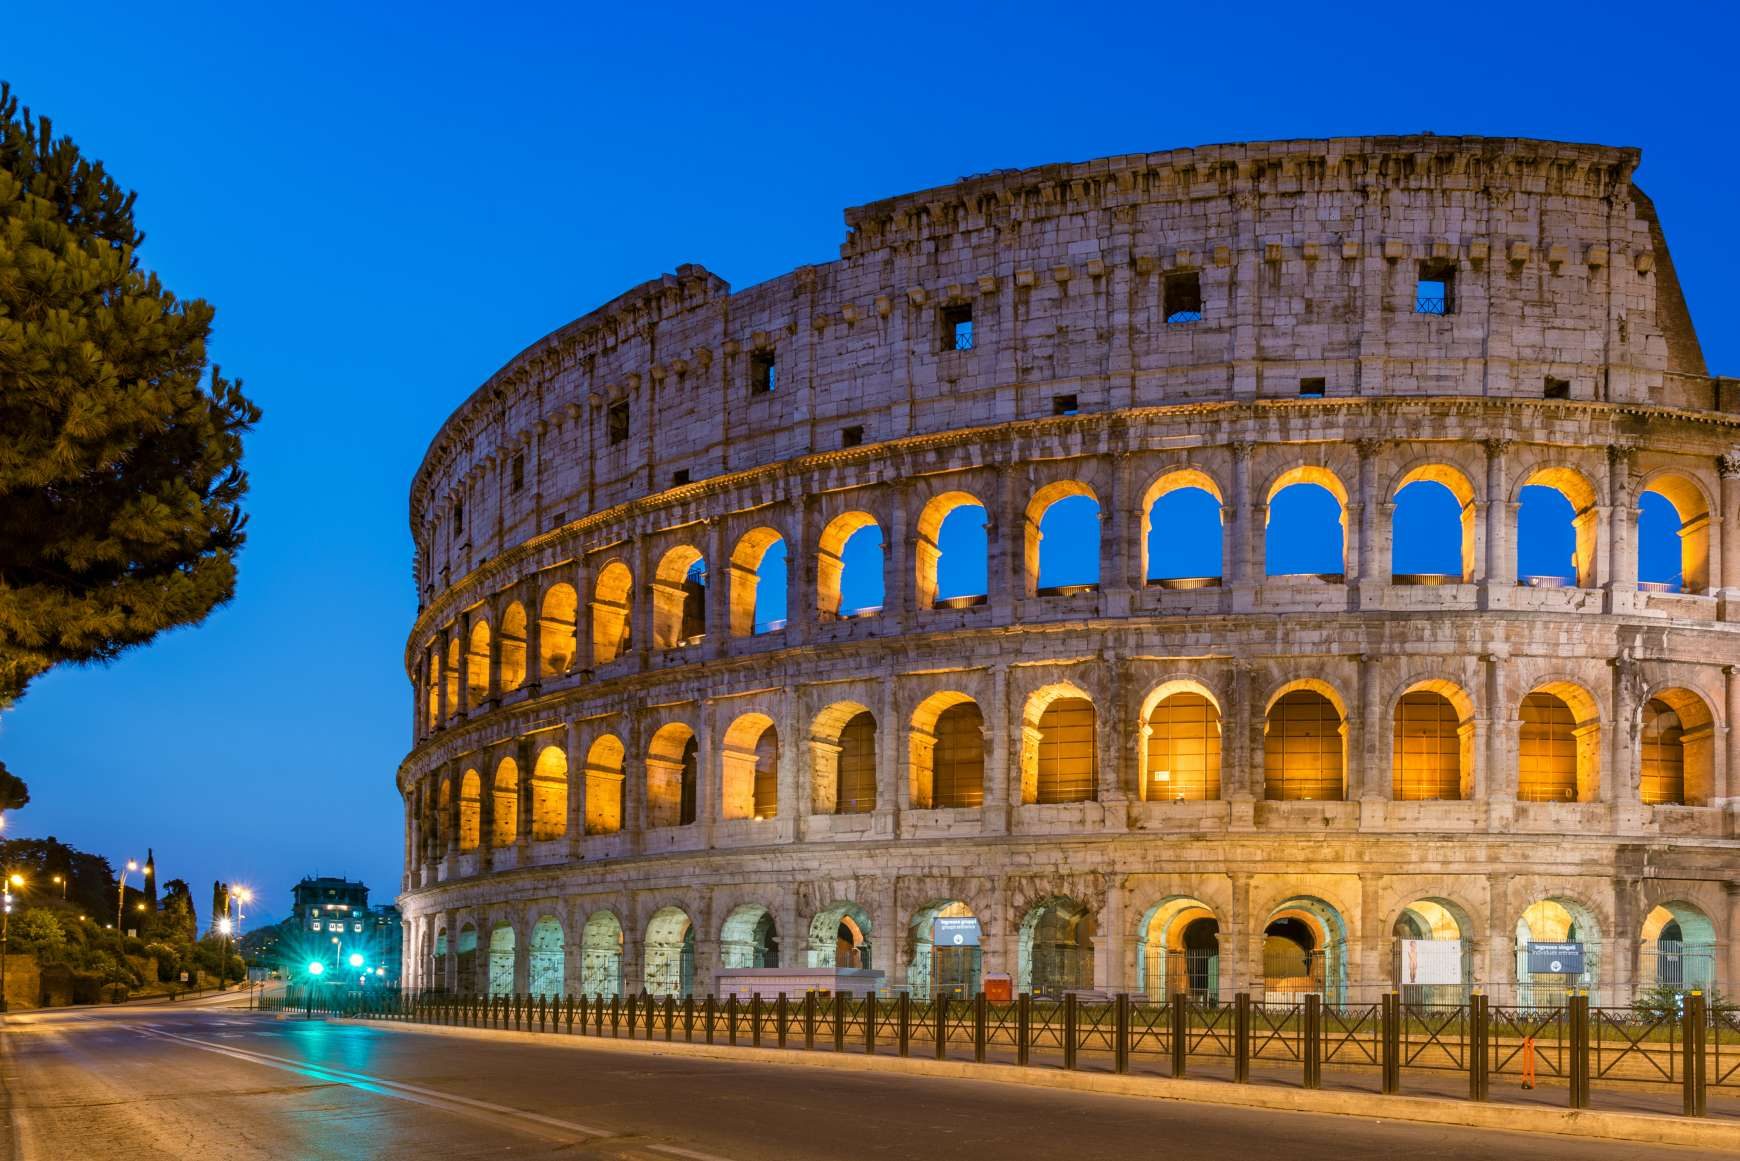 Partial view of arched facade of Colosseum at dusk